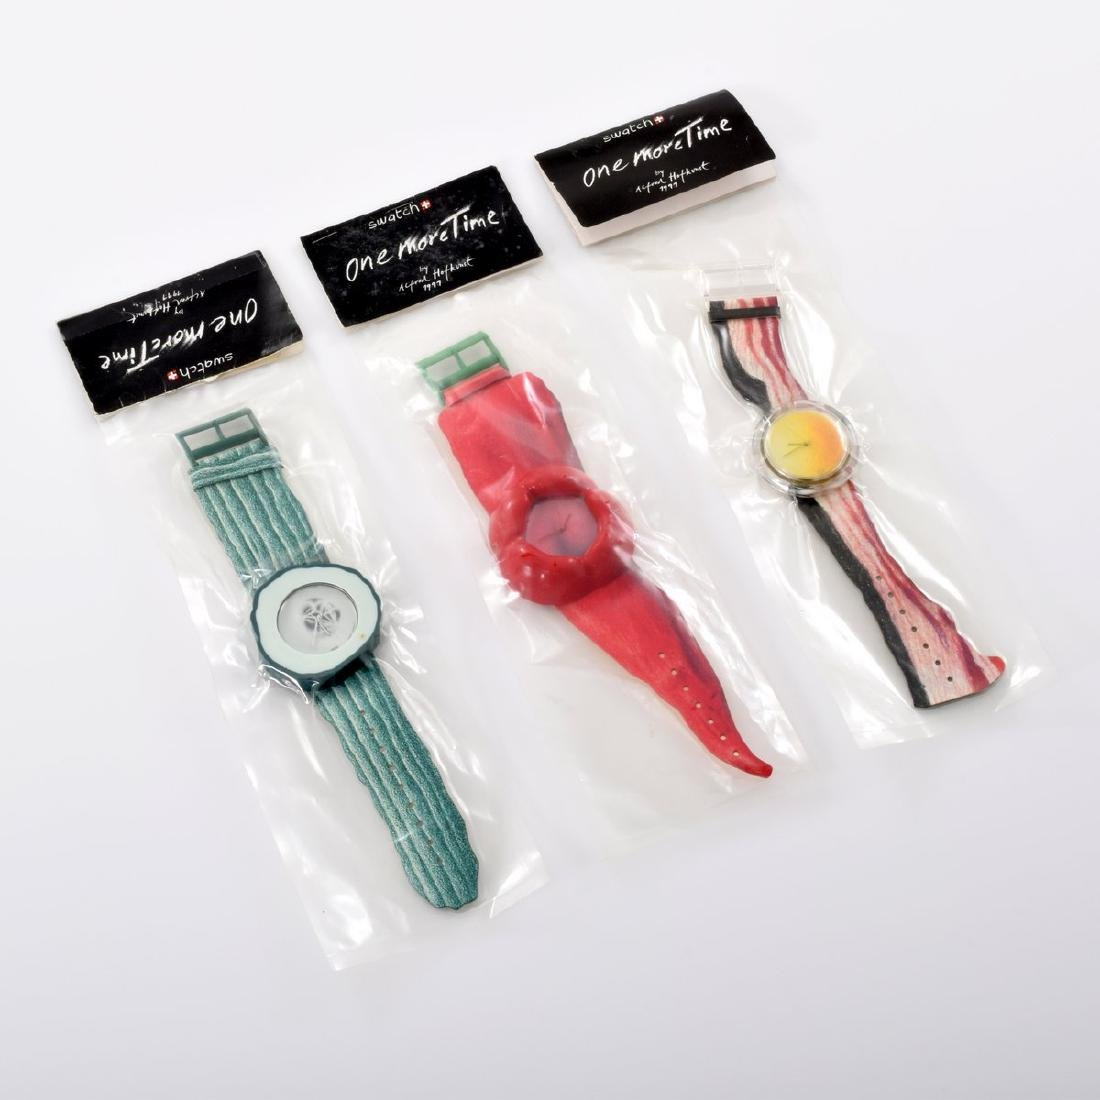 Swatch ONE MORE TIME Watches, Set of 3